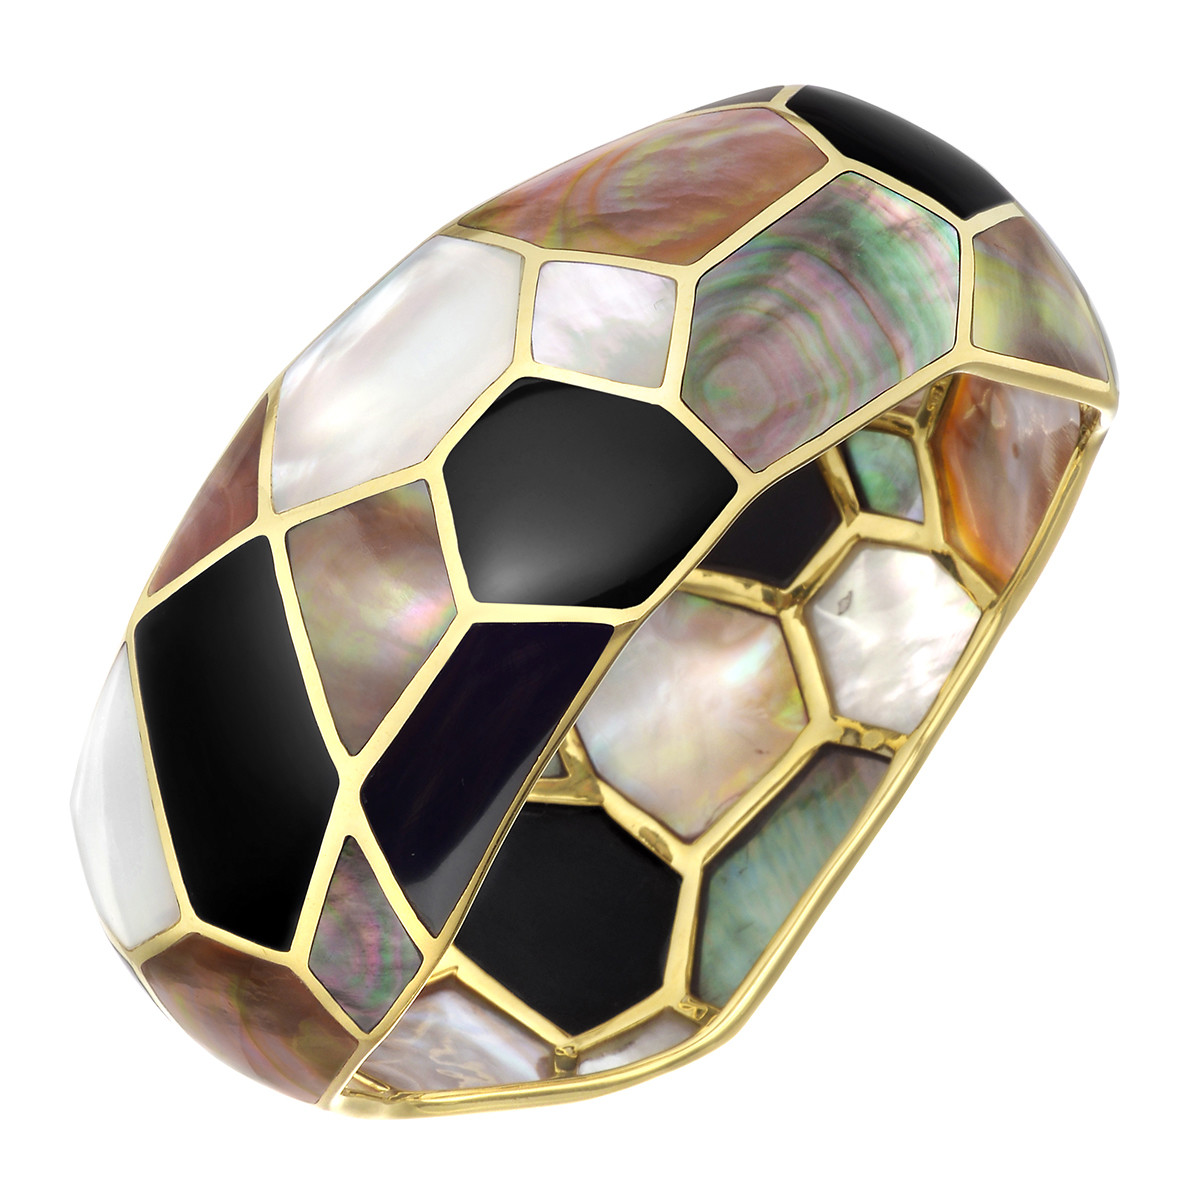 Mother-of-Pearl & Onyx Mosaic Bangle